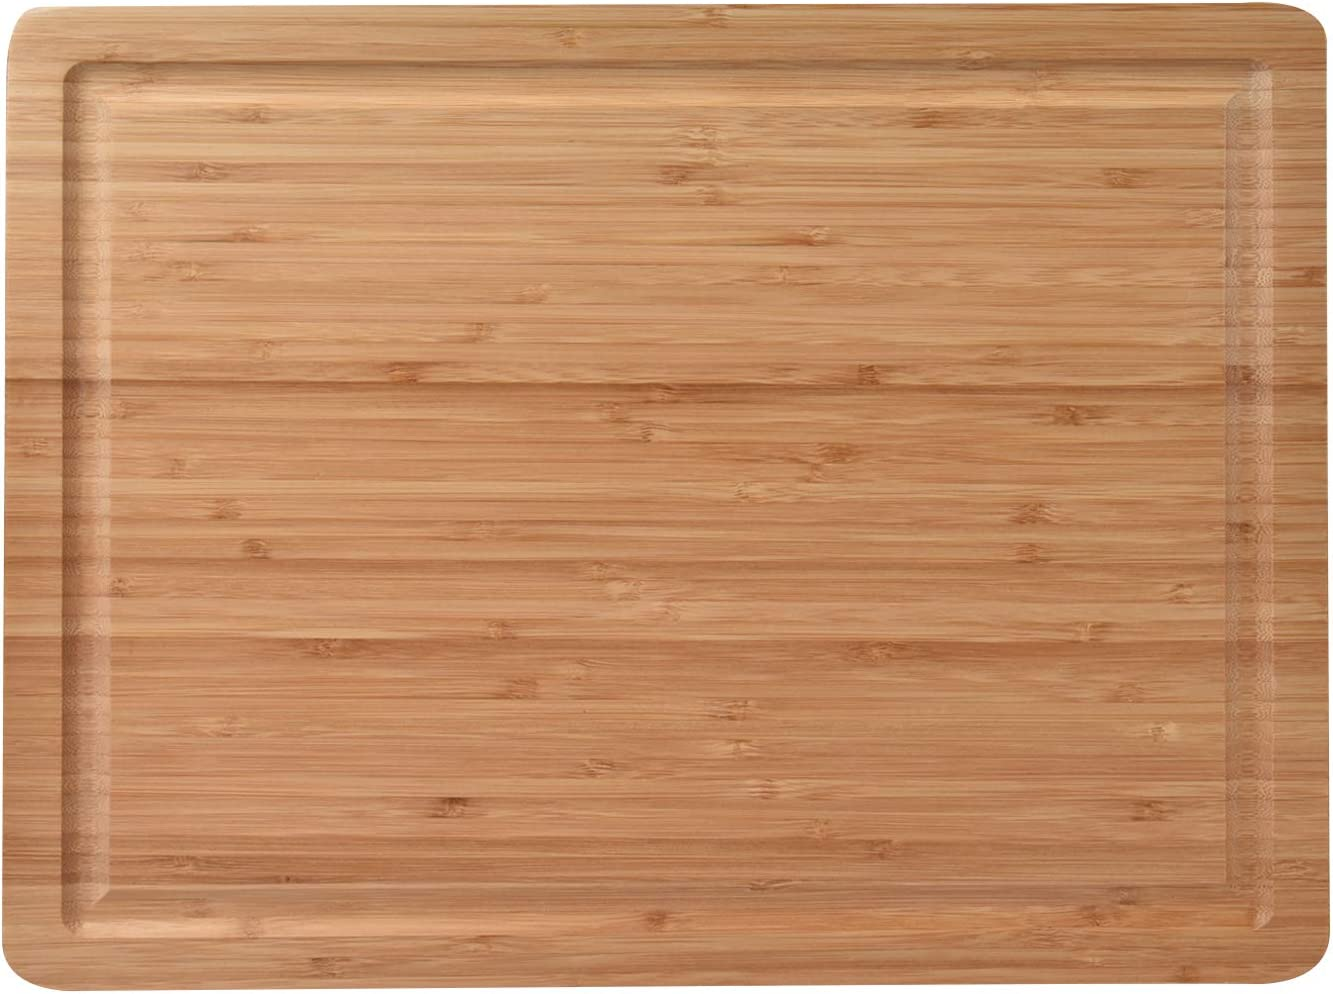 ZESPROKA Extra Large Bamboo Cutting Board (16 x 12 Inches) with Juice Grooves –Bamboo Chopping Board for Meat, Vegetables, Fruit&Cheese – Non Slip & Non Stick Design- Butcher Block for Kitchen